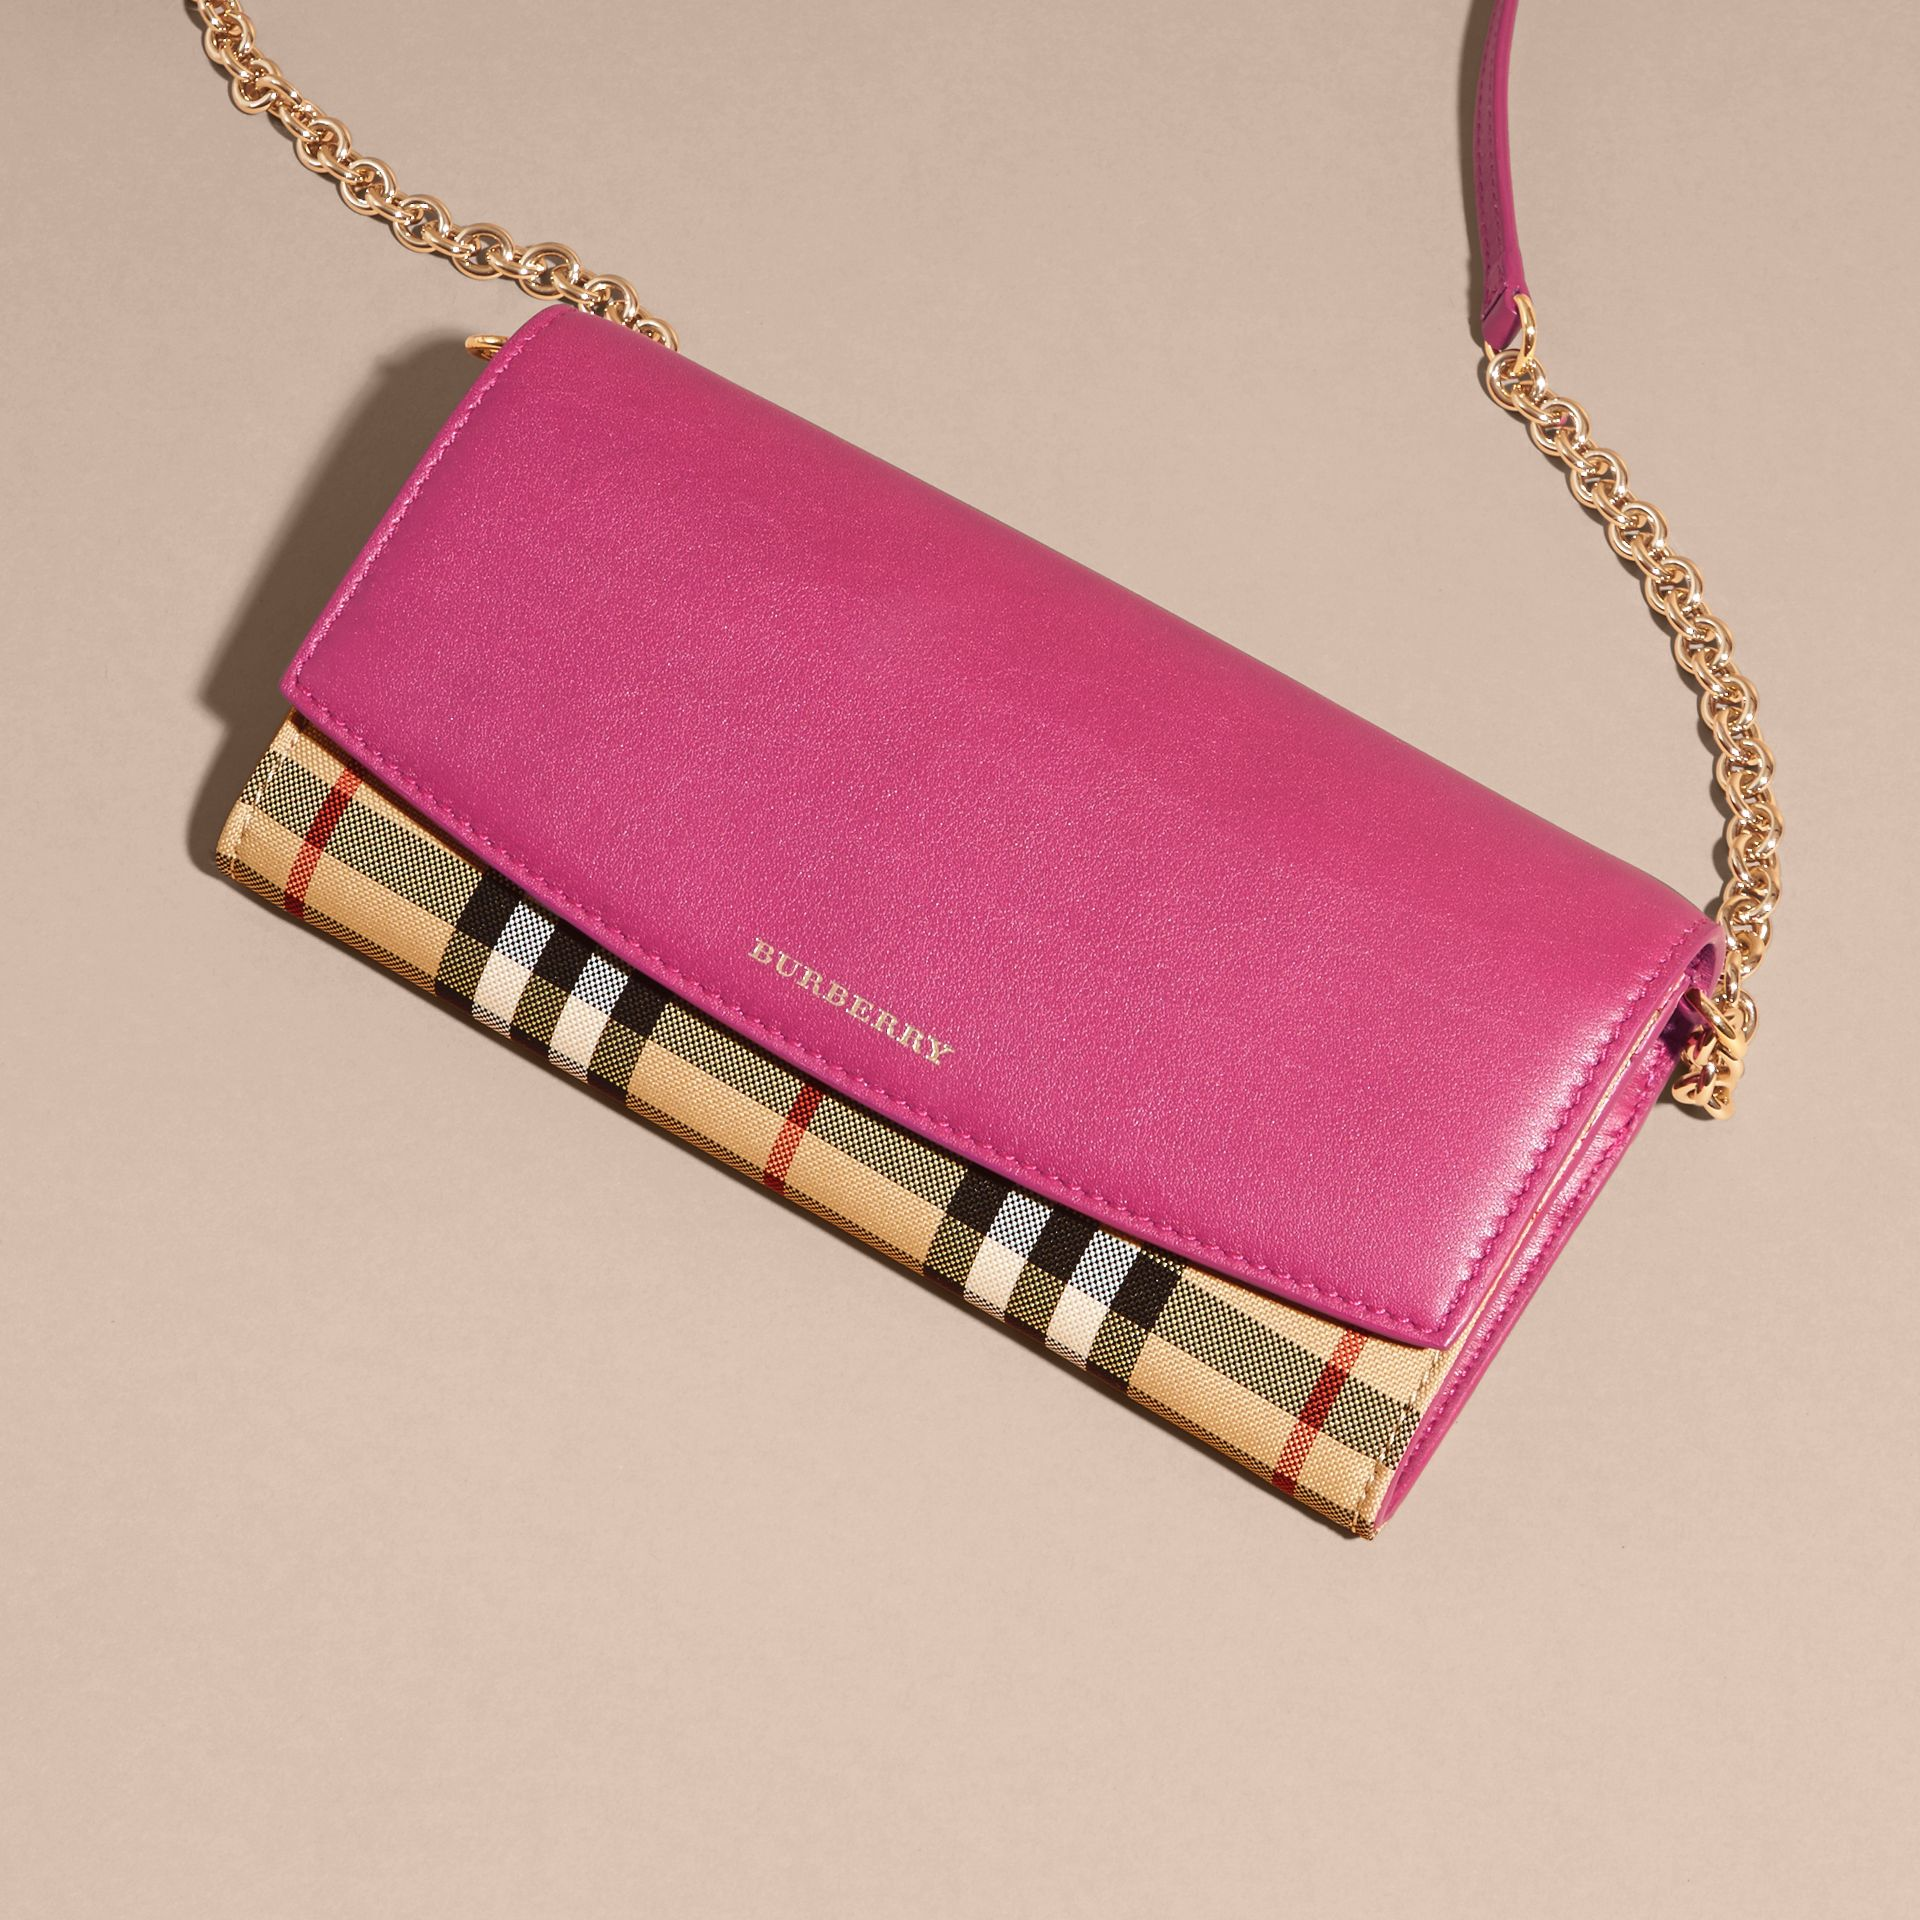 Brilliant fuchsia Horseferry Check and Leather Wallet with Chain Brilliant Fuchsia - gallery image 3